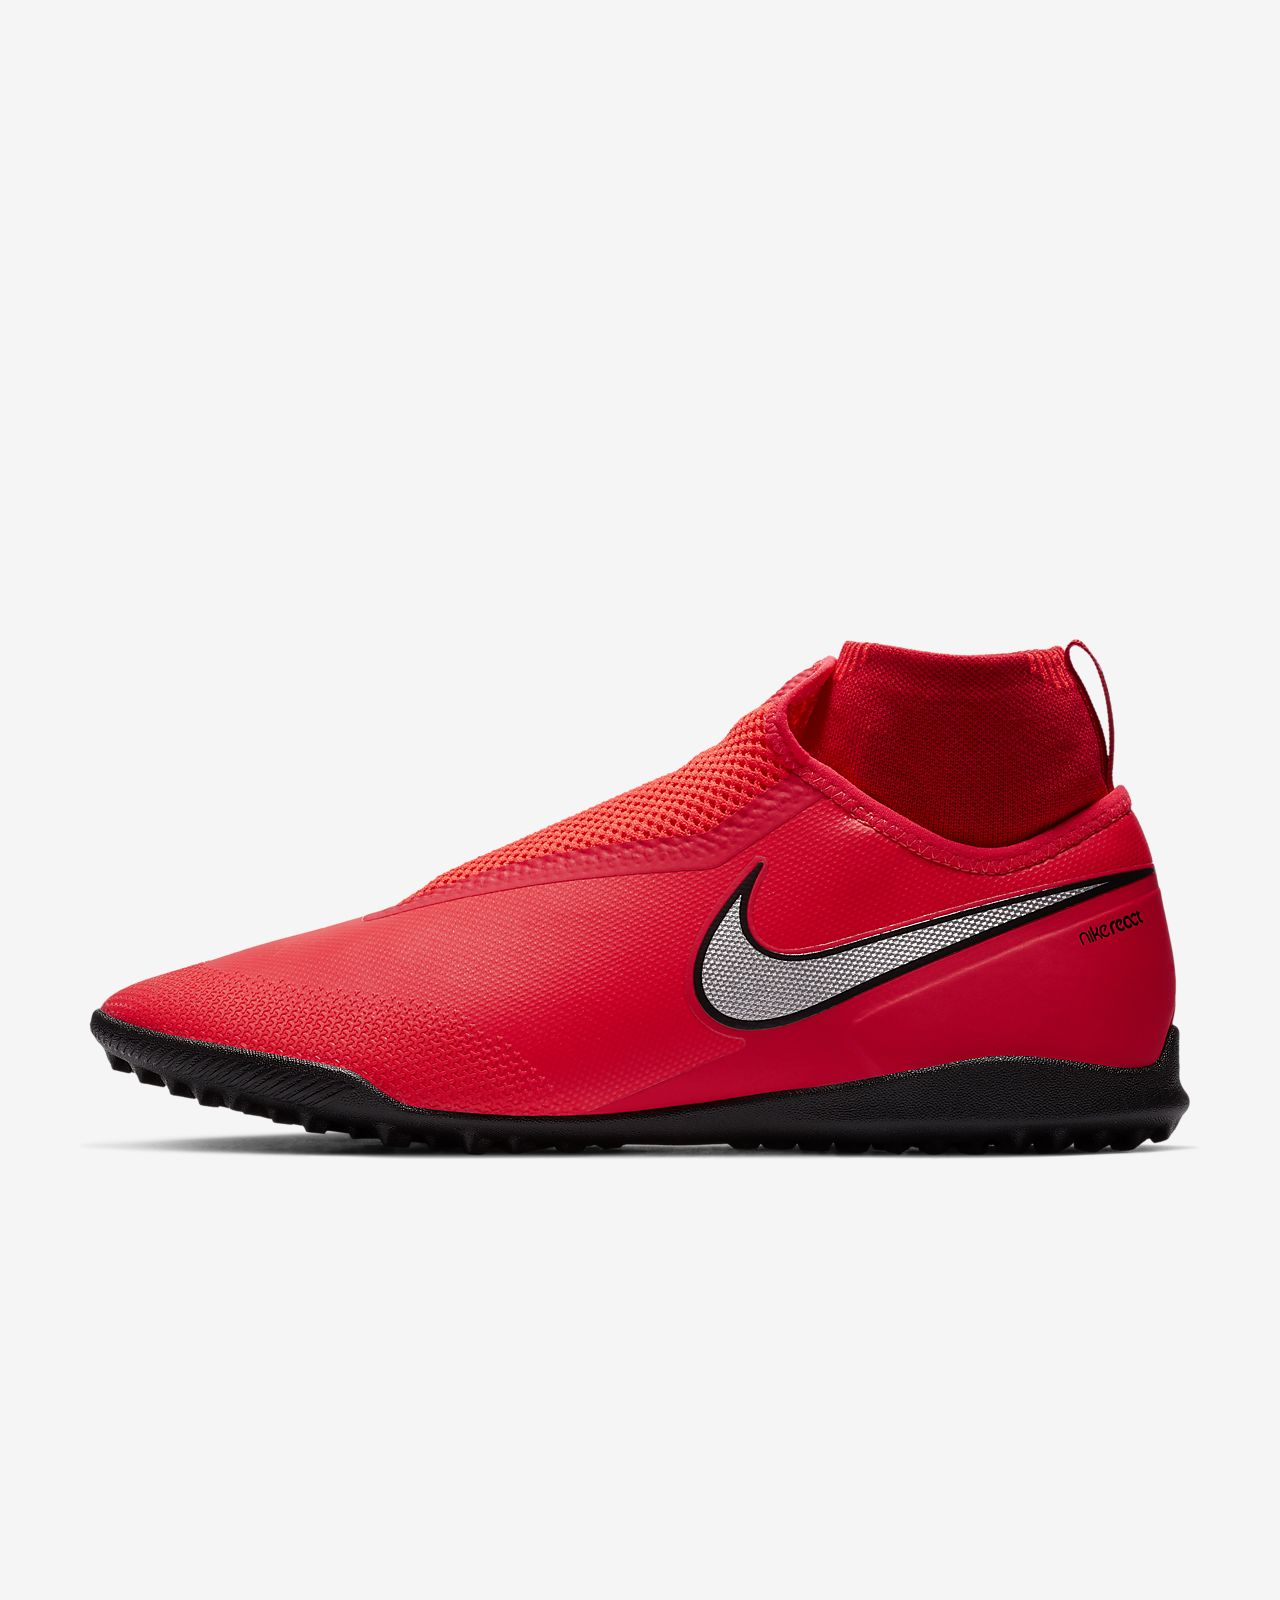 2b6df27015aaa ... Nike React PhantomVSN Pro Dynamic Fit Game Over TF Botes de futbol per  a moqueta-